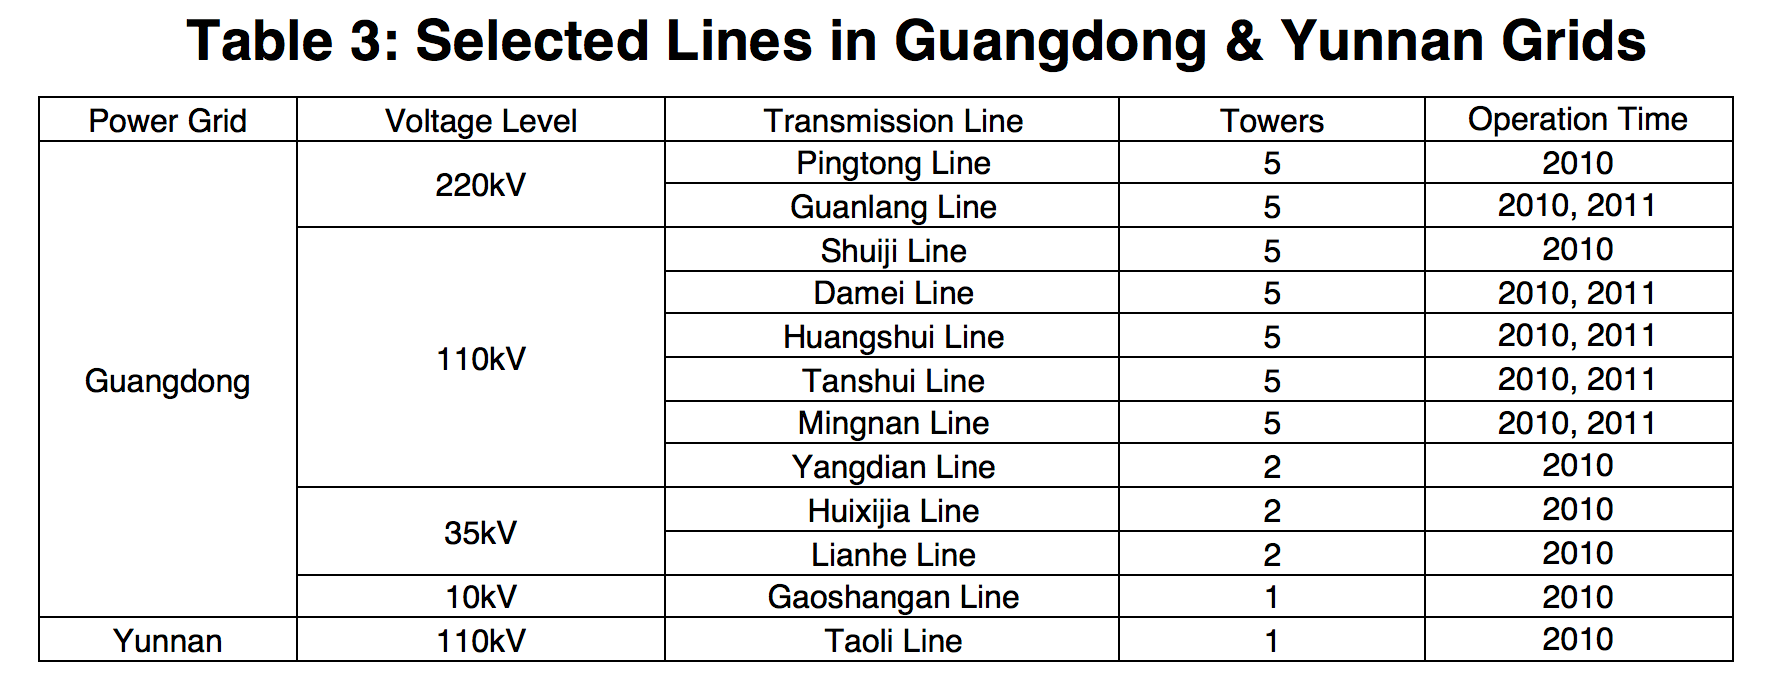 Table 3: Selected Lines in Guangdong & Yunnan Grids ice accretion Semi-Conductive Coatings to Limit Ice Accretion on Insulators Screen Shot 2016 09 30 at 12